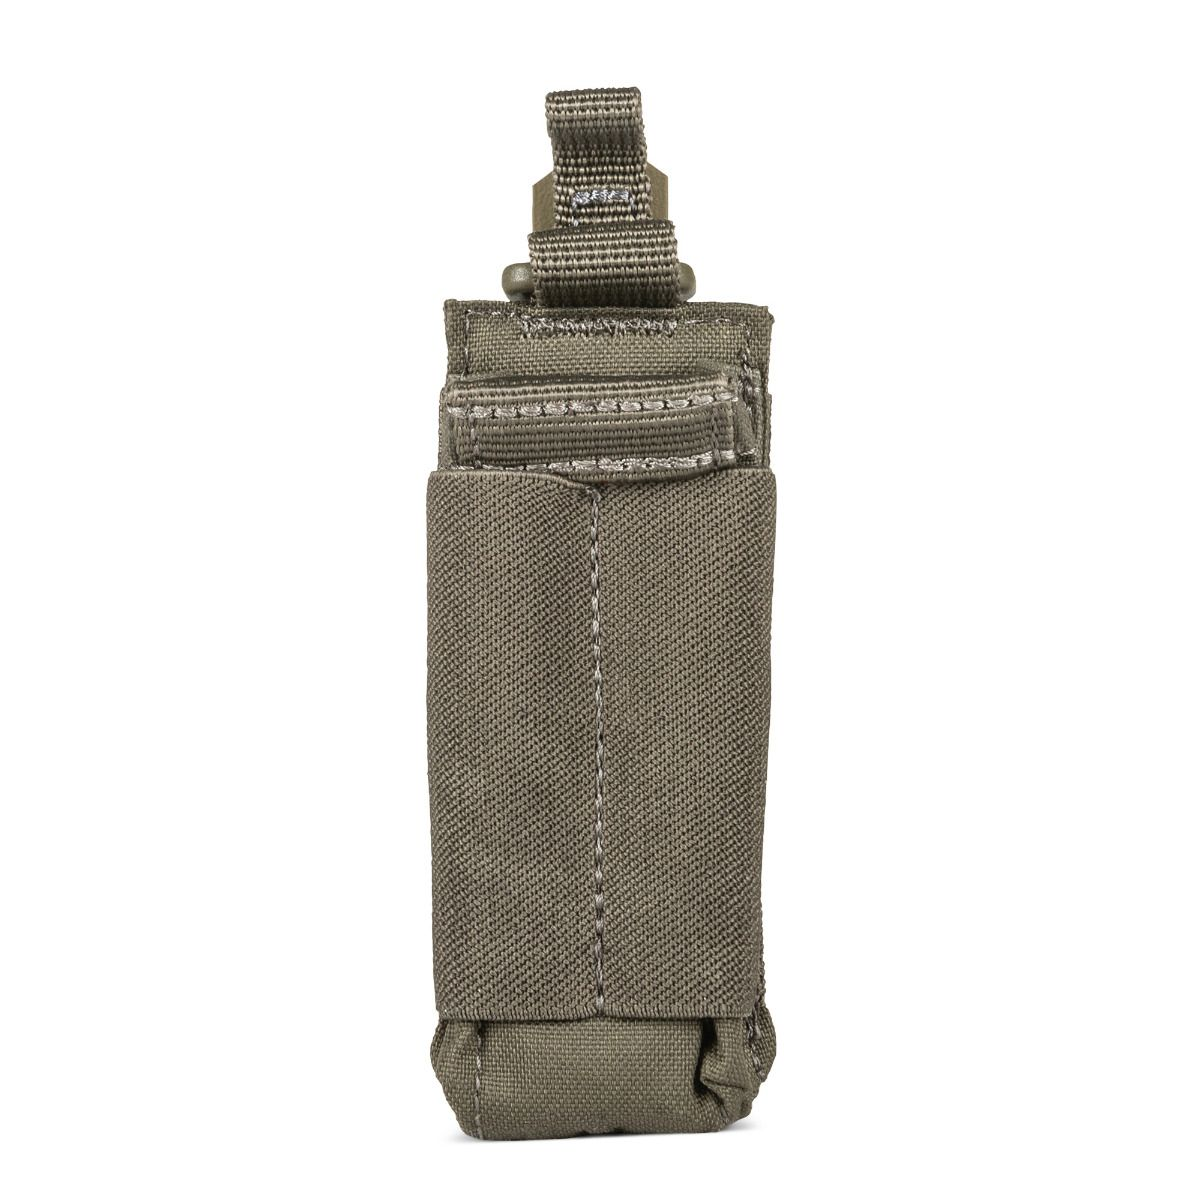 FLEX SINGLE PISTOL MAG POUCH – Ranger Green